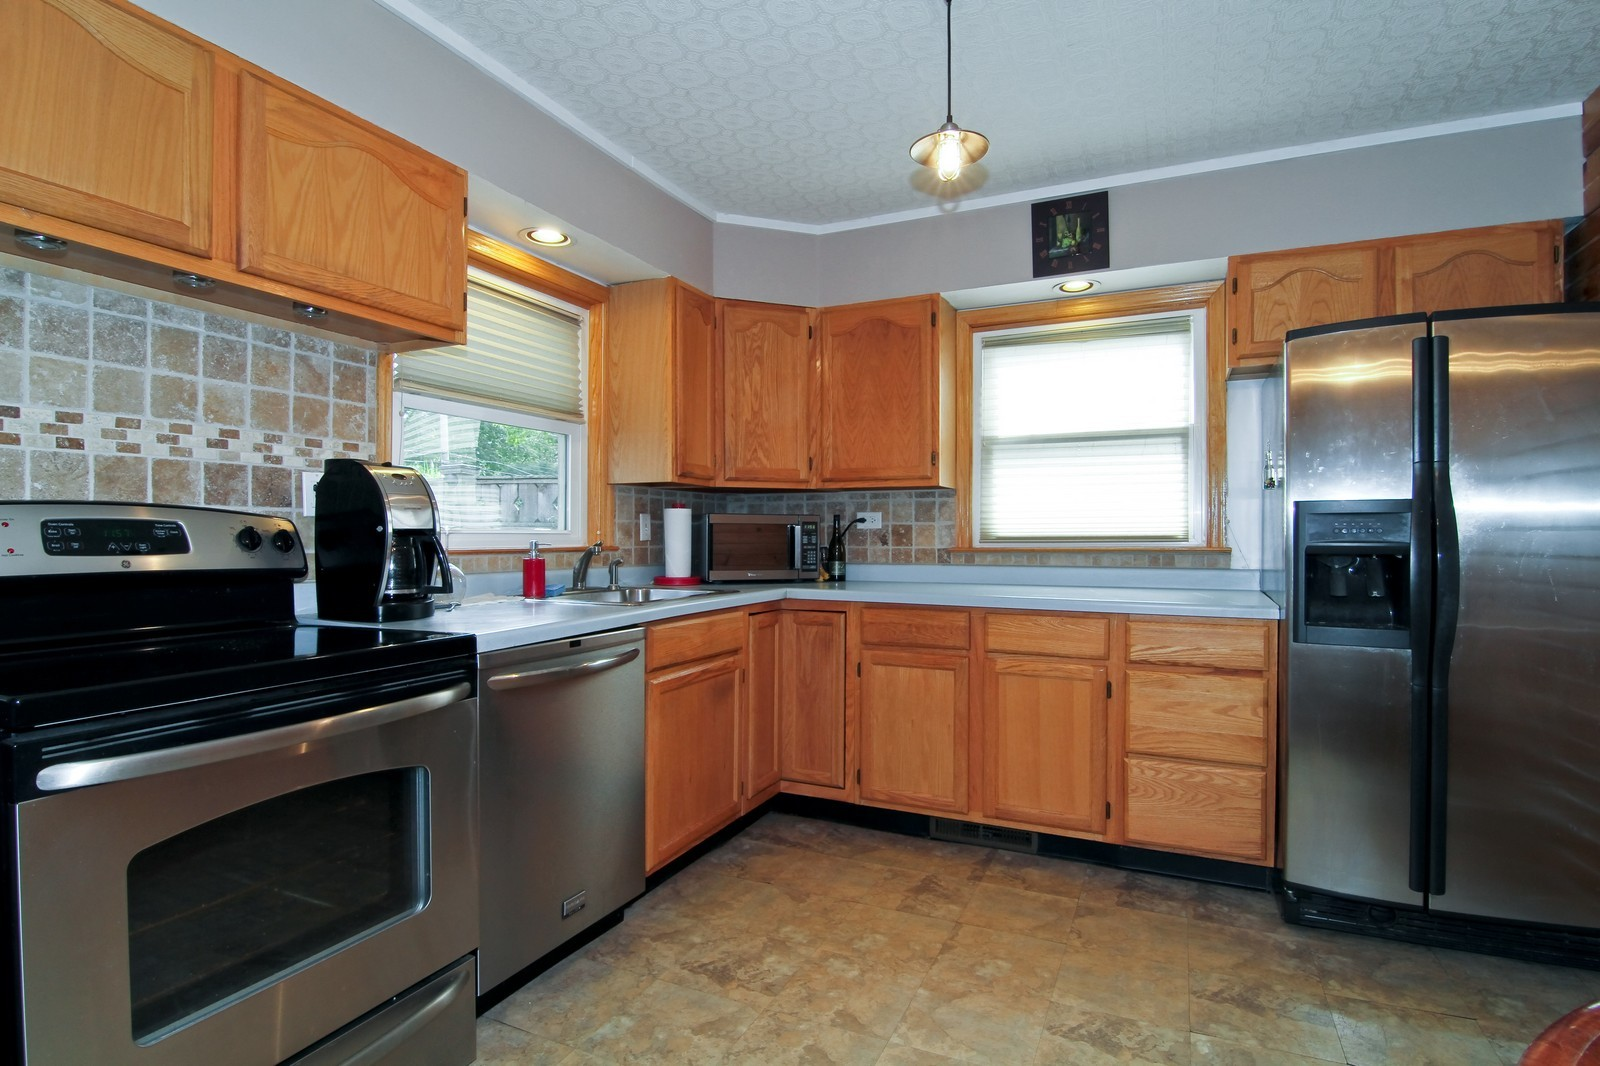 Real Estate Photography - 105 S Piece Ave, Wheaton, IL, 60187 - Kitchen